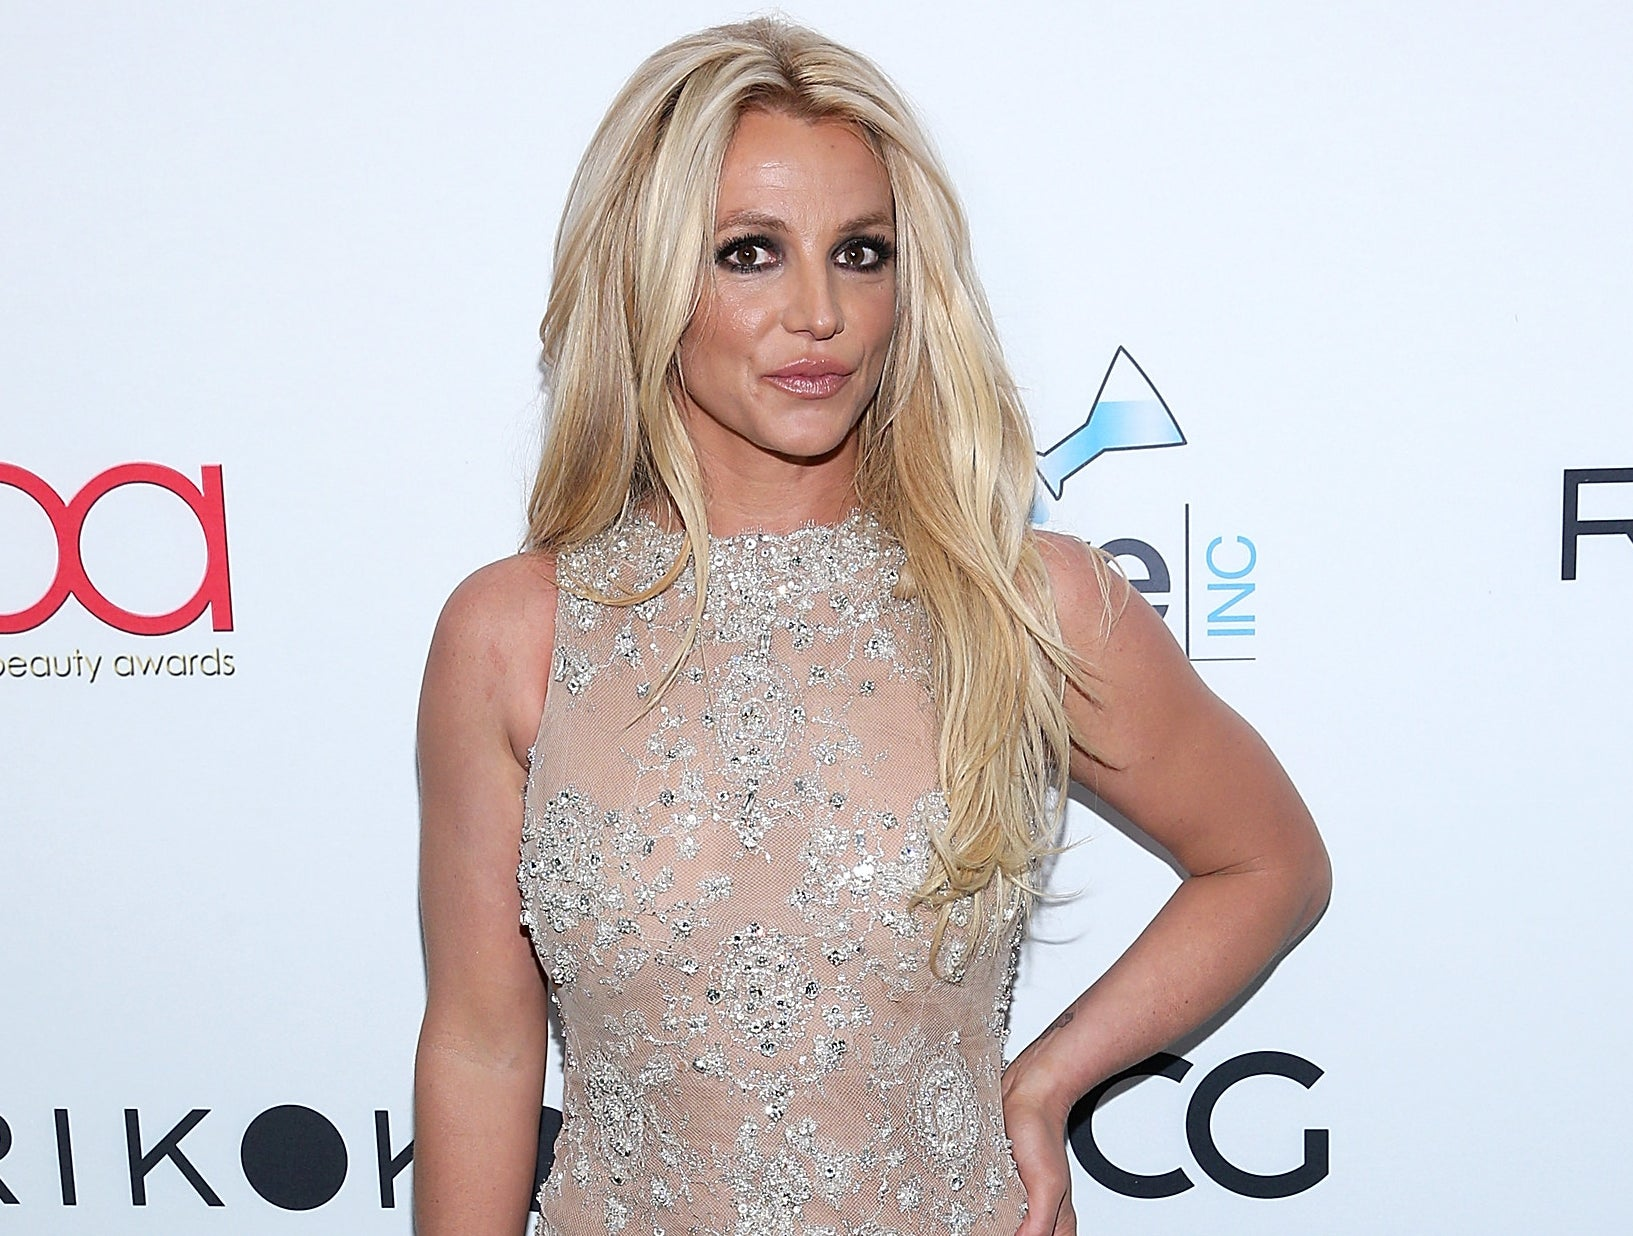 Britney wears a sheer sleeveless dress with silver jeweled detailing